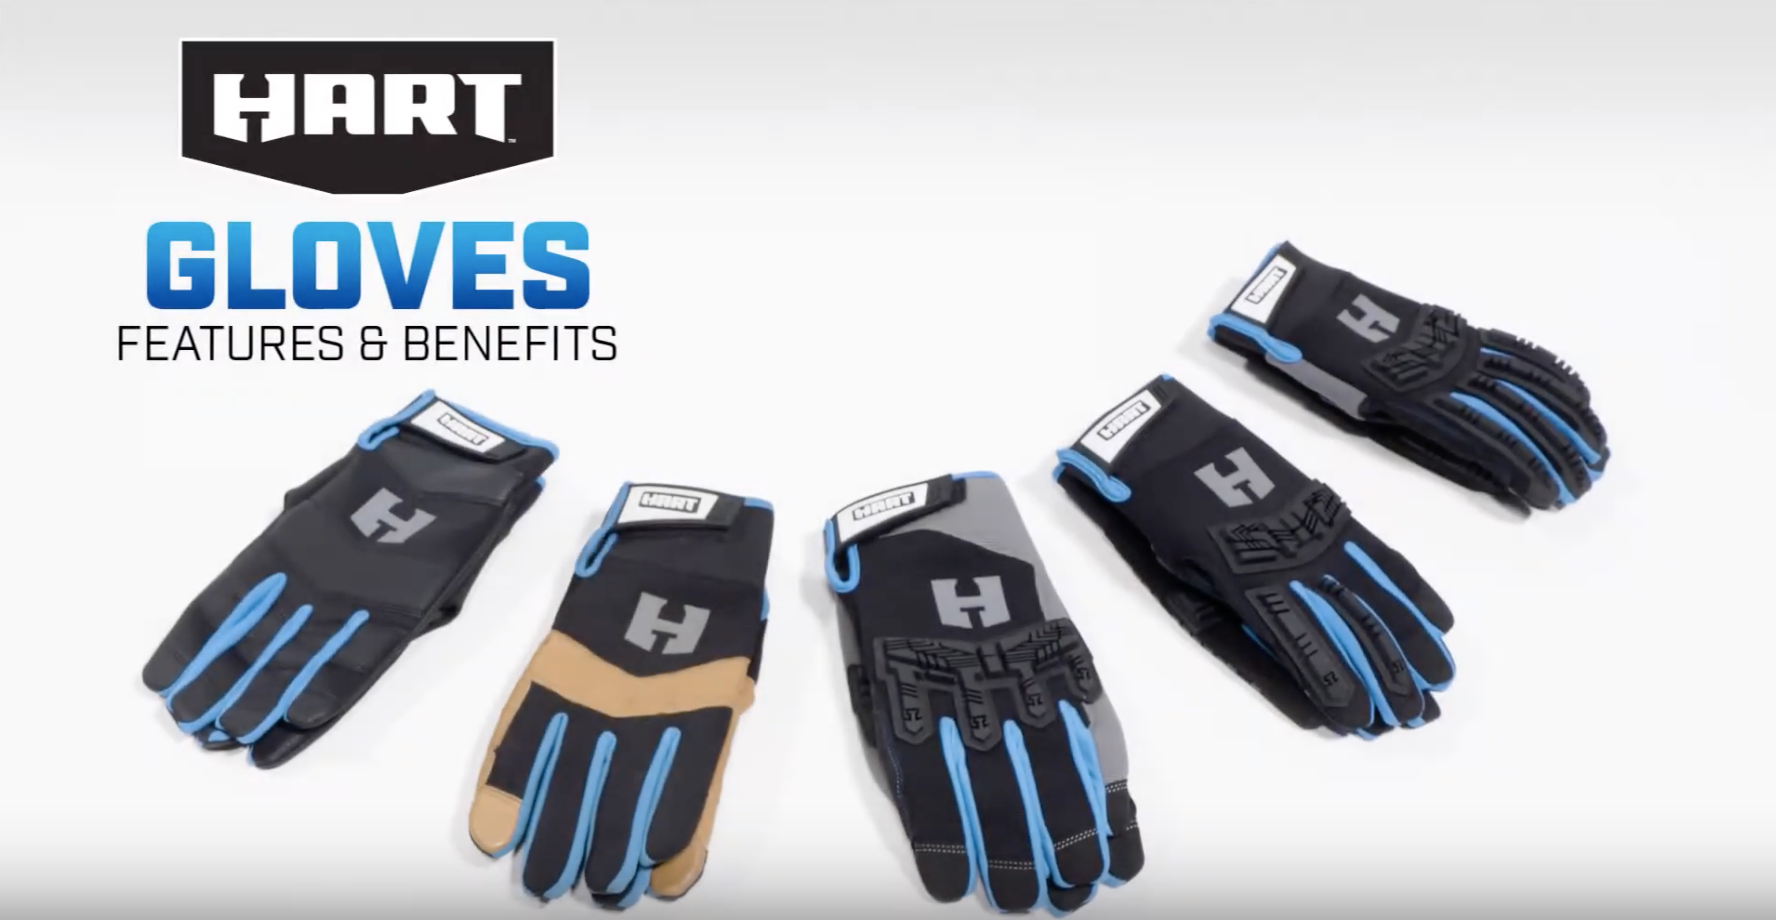 HART Gloves